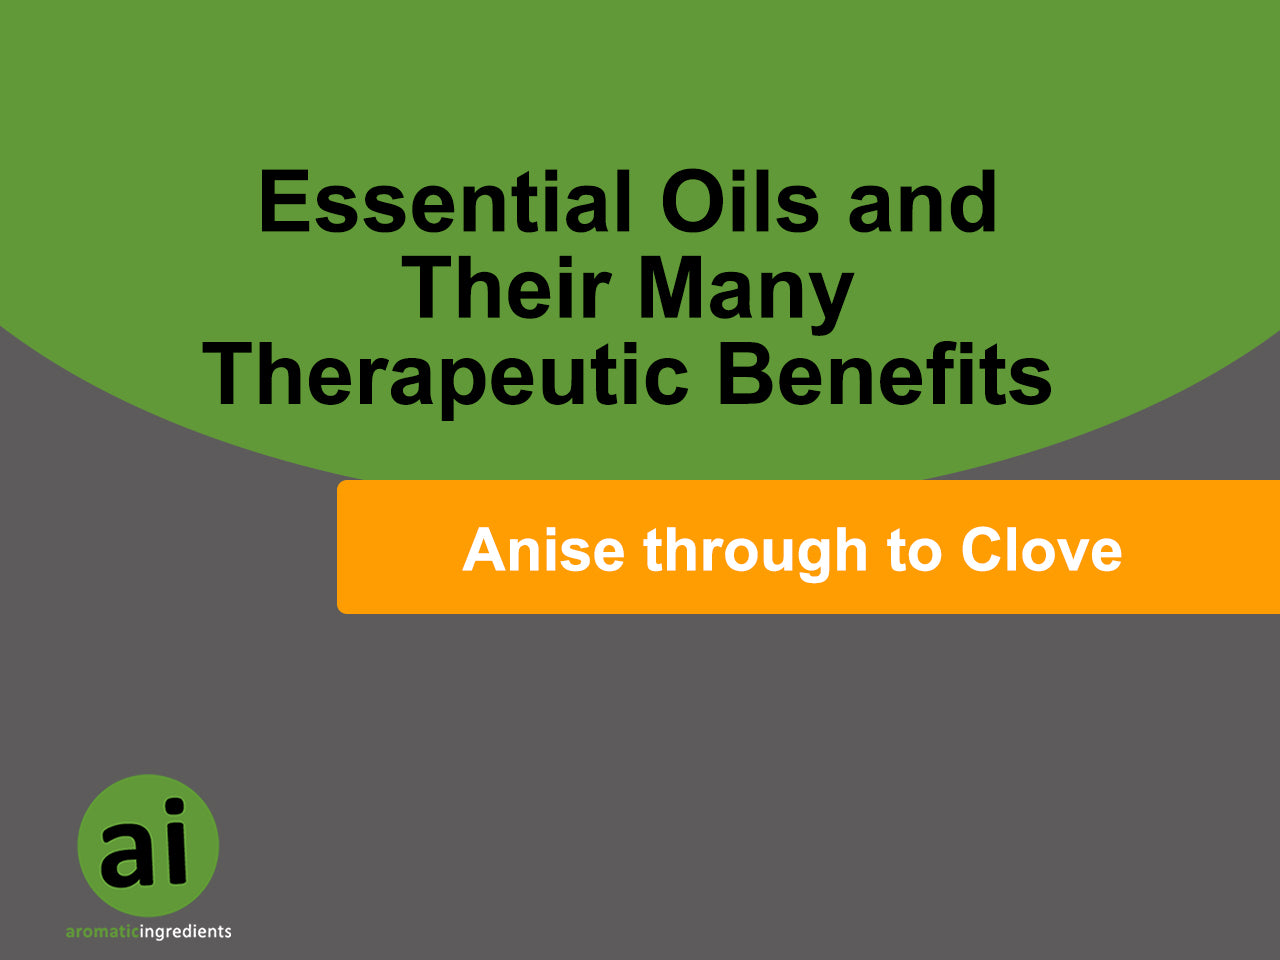 Essential Oils and their Therapeutic Benefits – Anise through to Clove